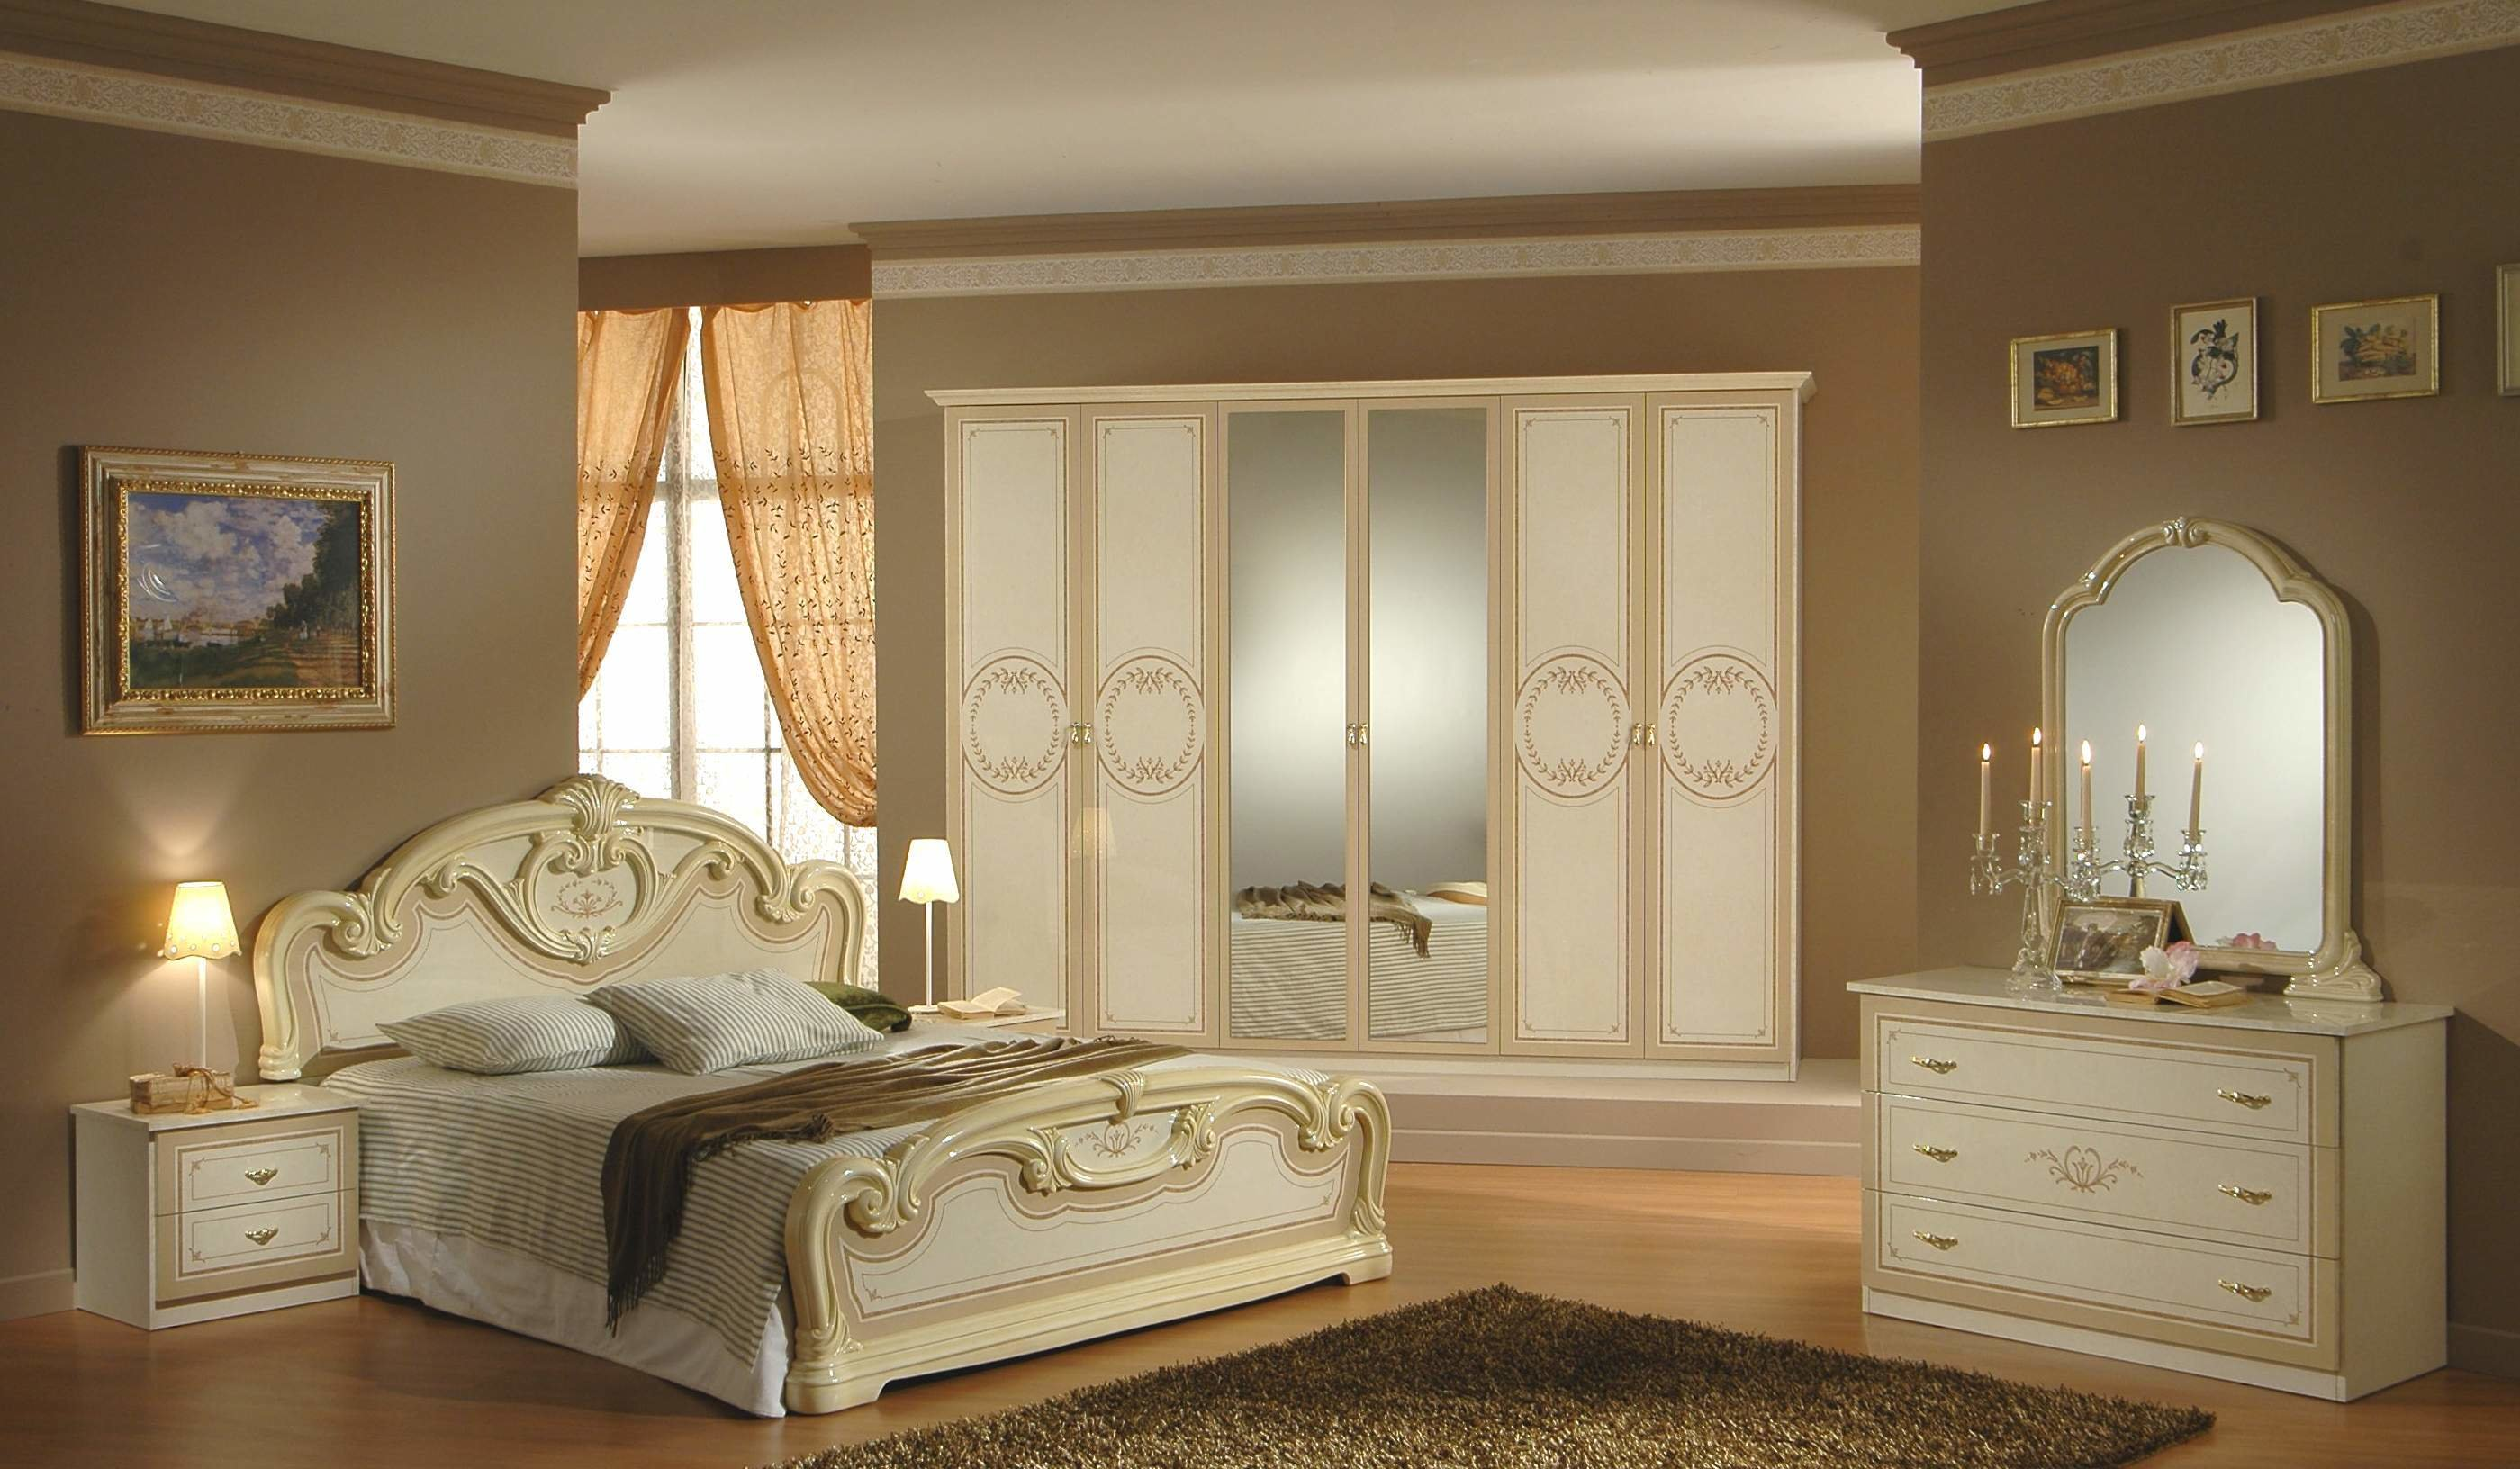 Best Classic Bedroom Design 8 Designs Enhancedhomes Org With Pictures